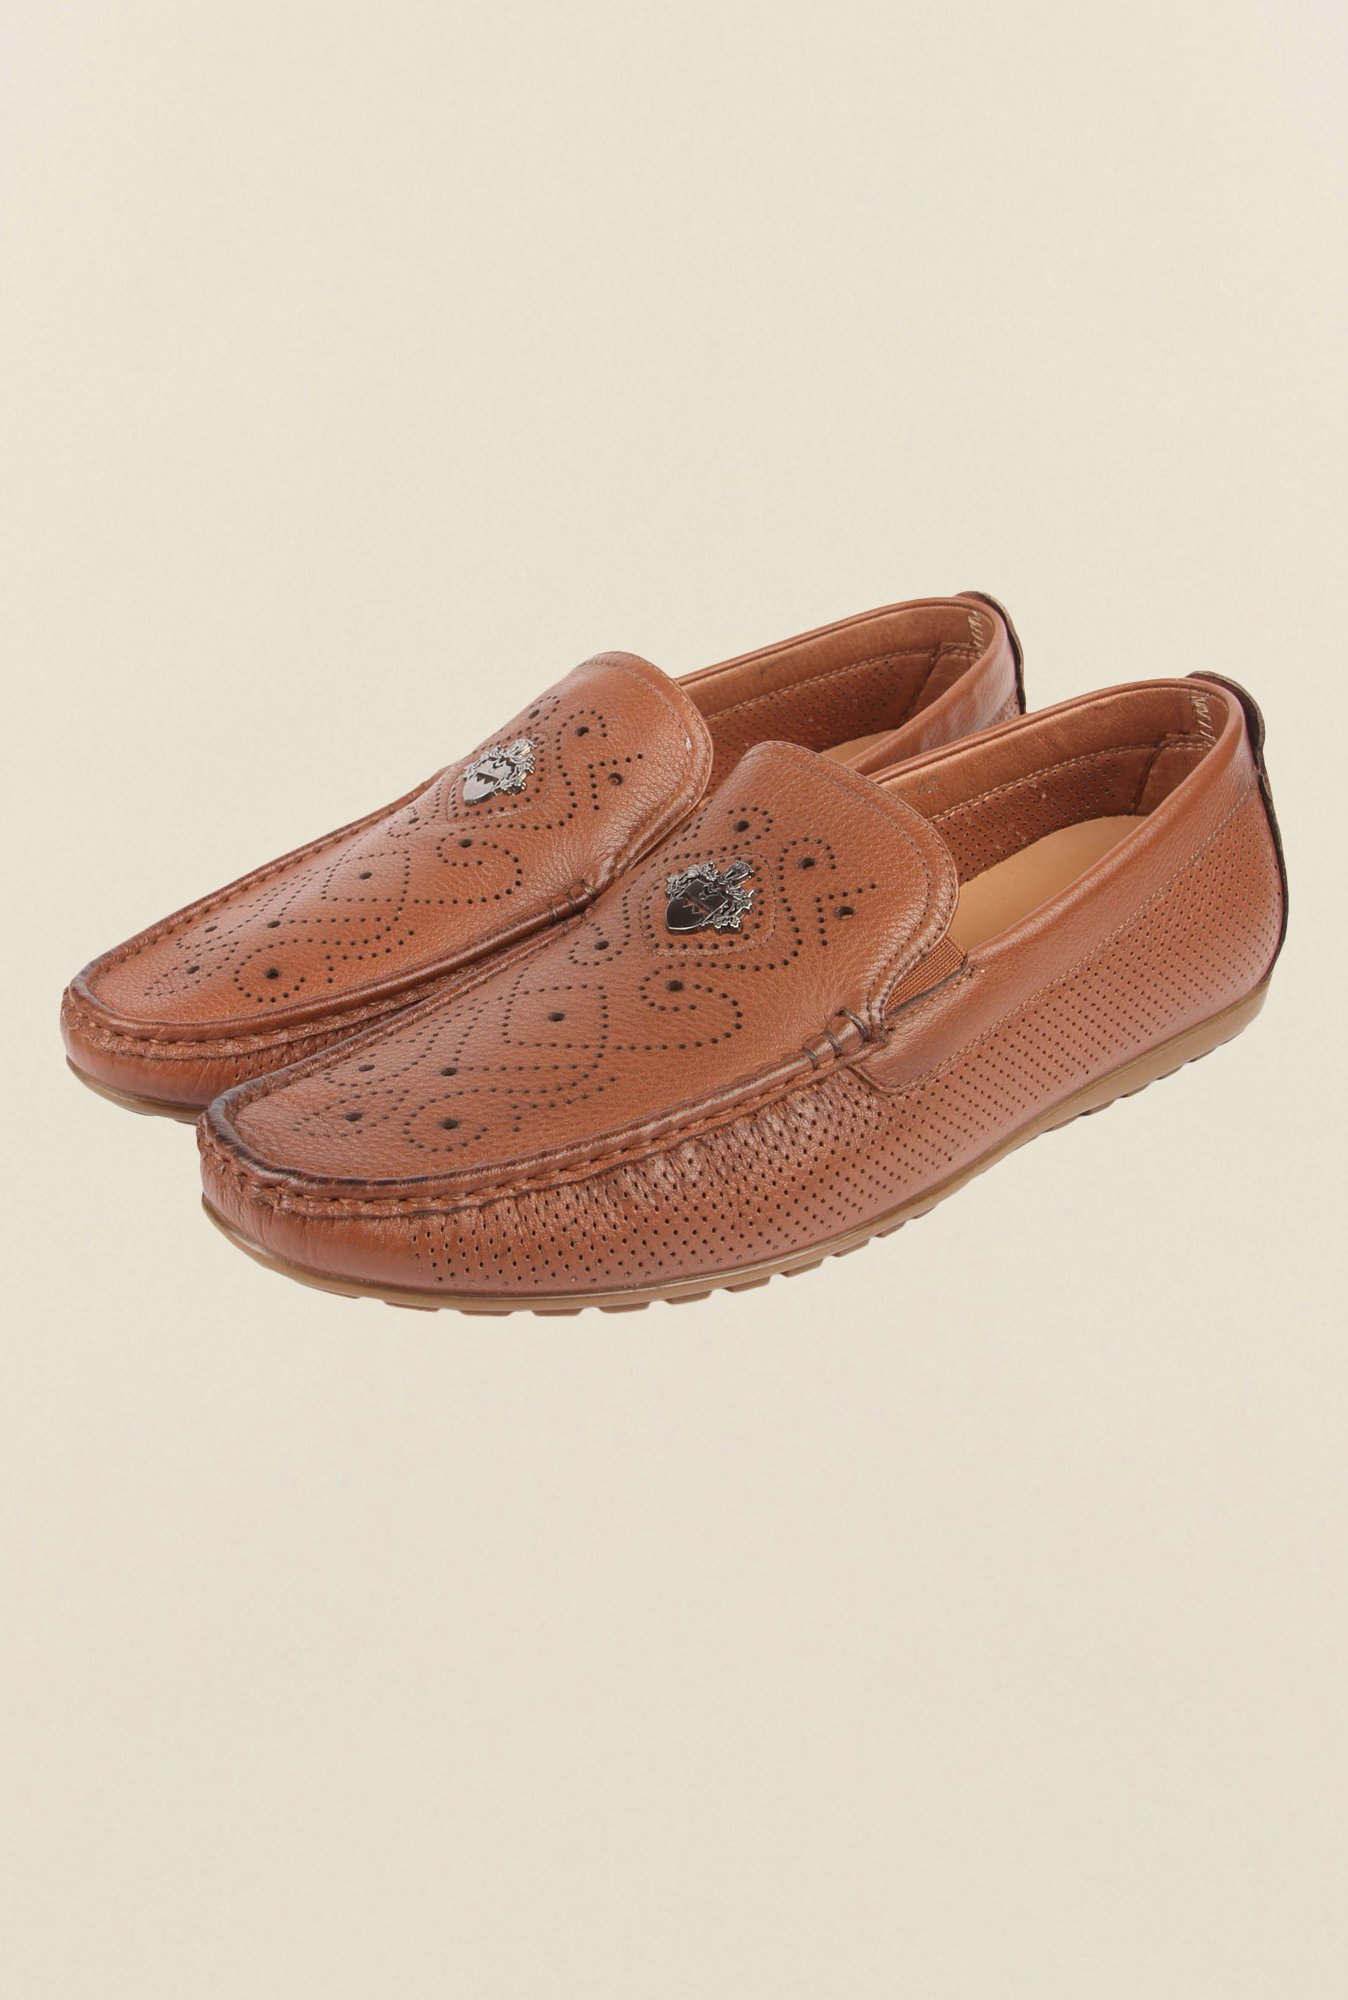 Cobblerz Brown Leather Moccasins